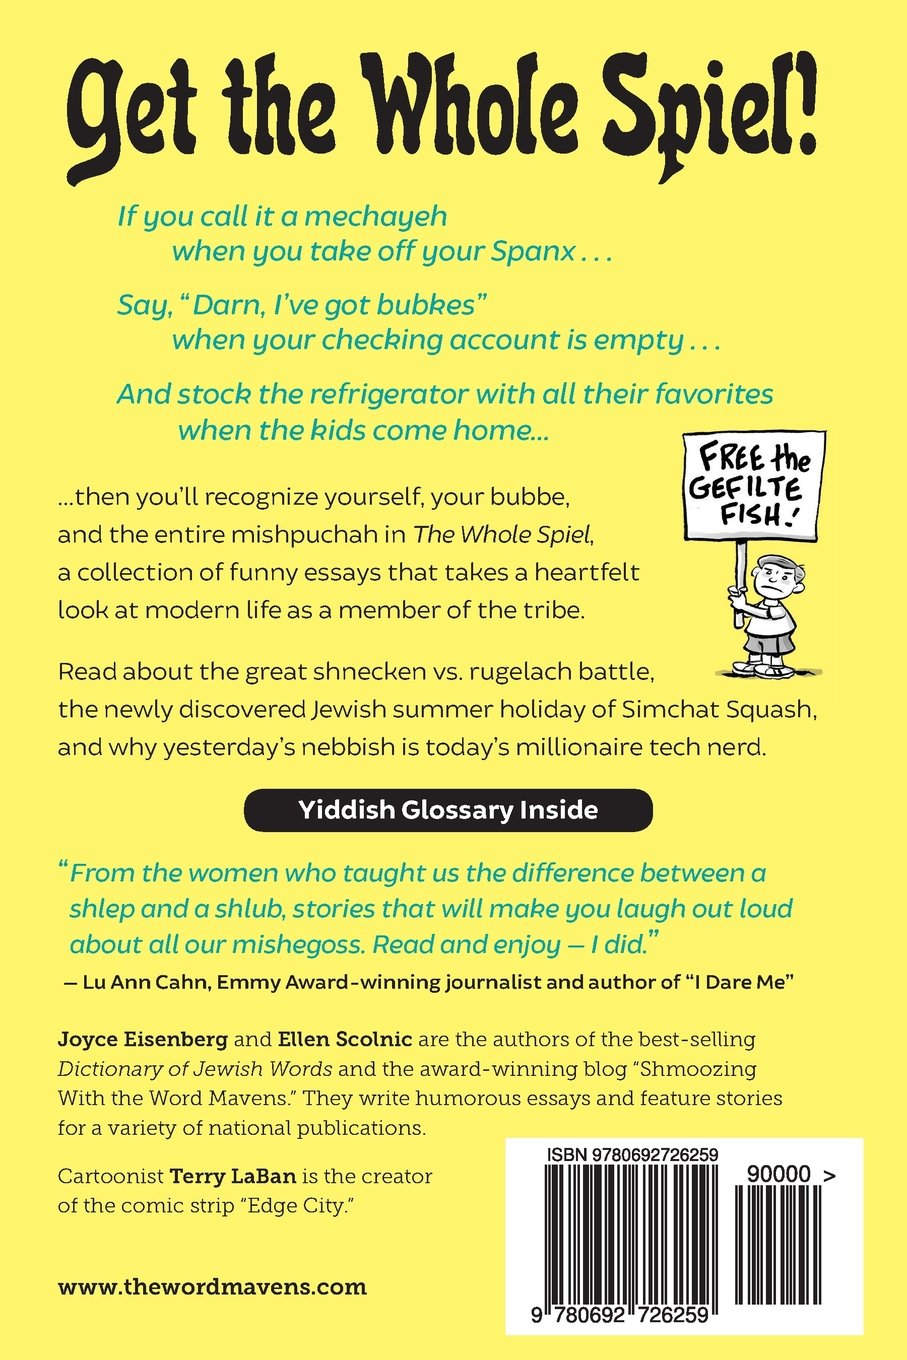 funny essays the whole spiel funny essays about digital nudniks  the whole spiel funny essays about digital nudniks seder selfies the whole spiel funny essays about